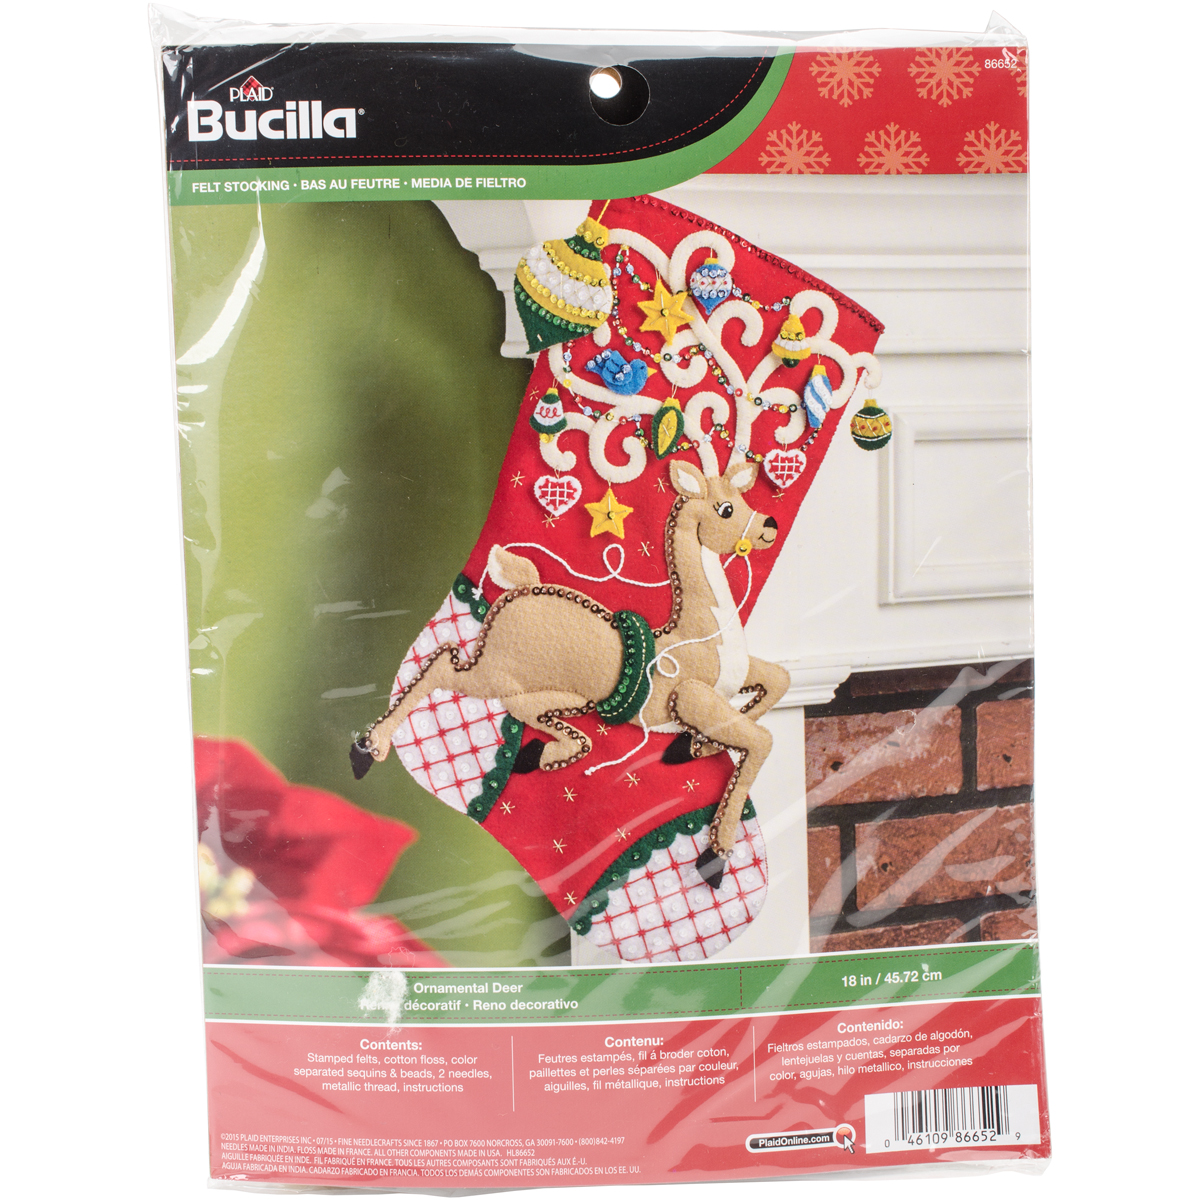 "Bucilla Felt Stocking Applique Kit 18"" Long Ornamental Deer"